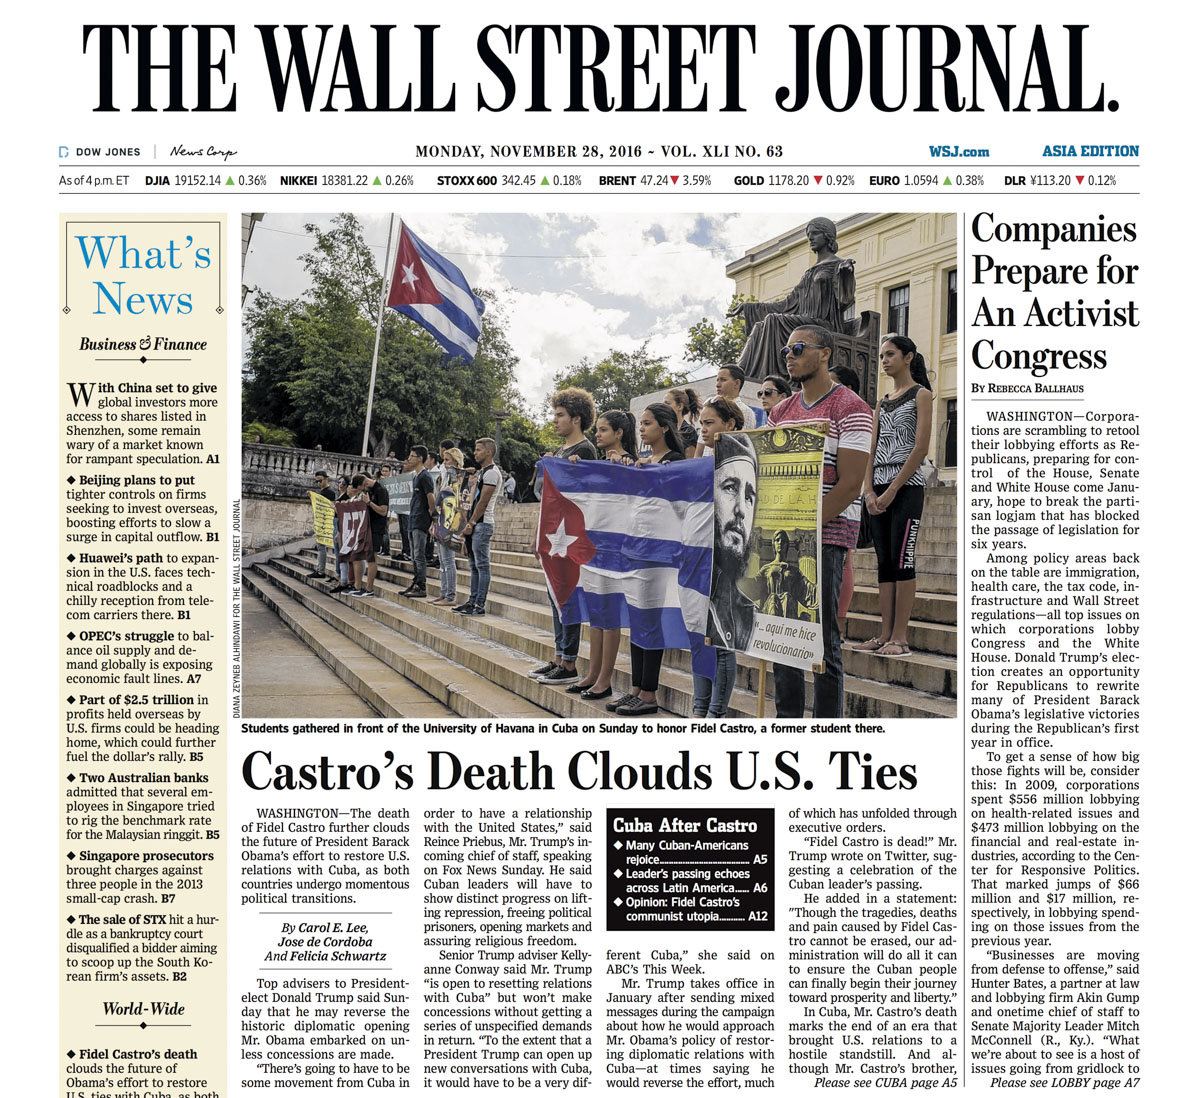 Castro's death clouds U.S. ties | The Wall Street Journal, Asia edition, front page A1, Nov 28, 2016